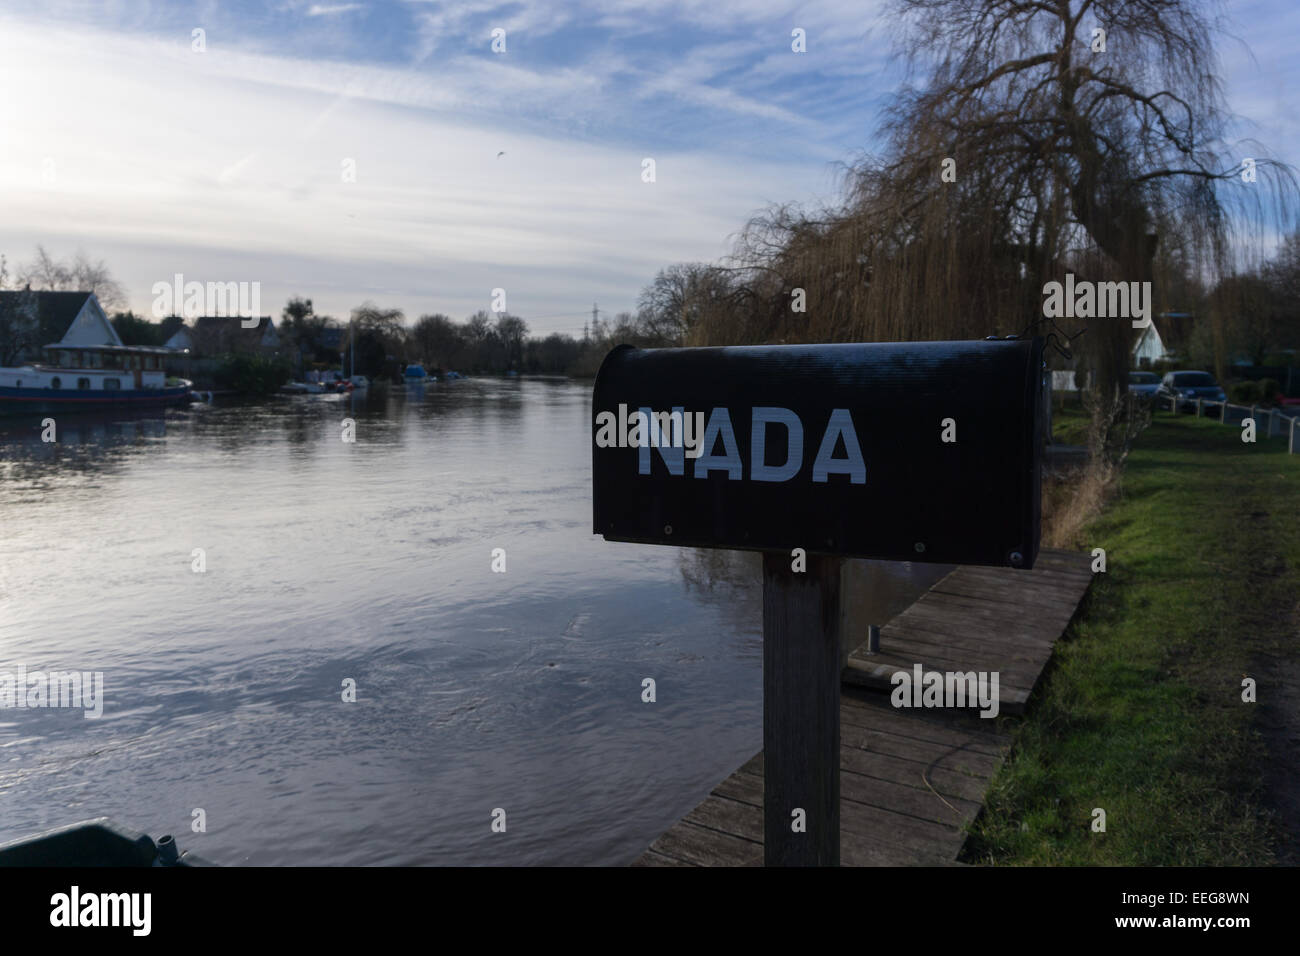 The letterbox of one of the houses on Pharaoh's Island in Shepperton near London Stock Photo